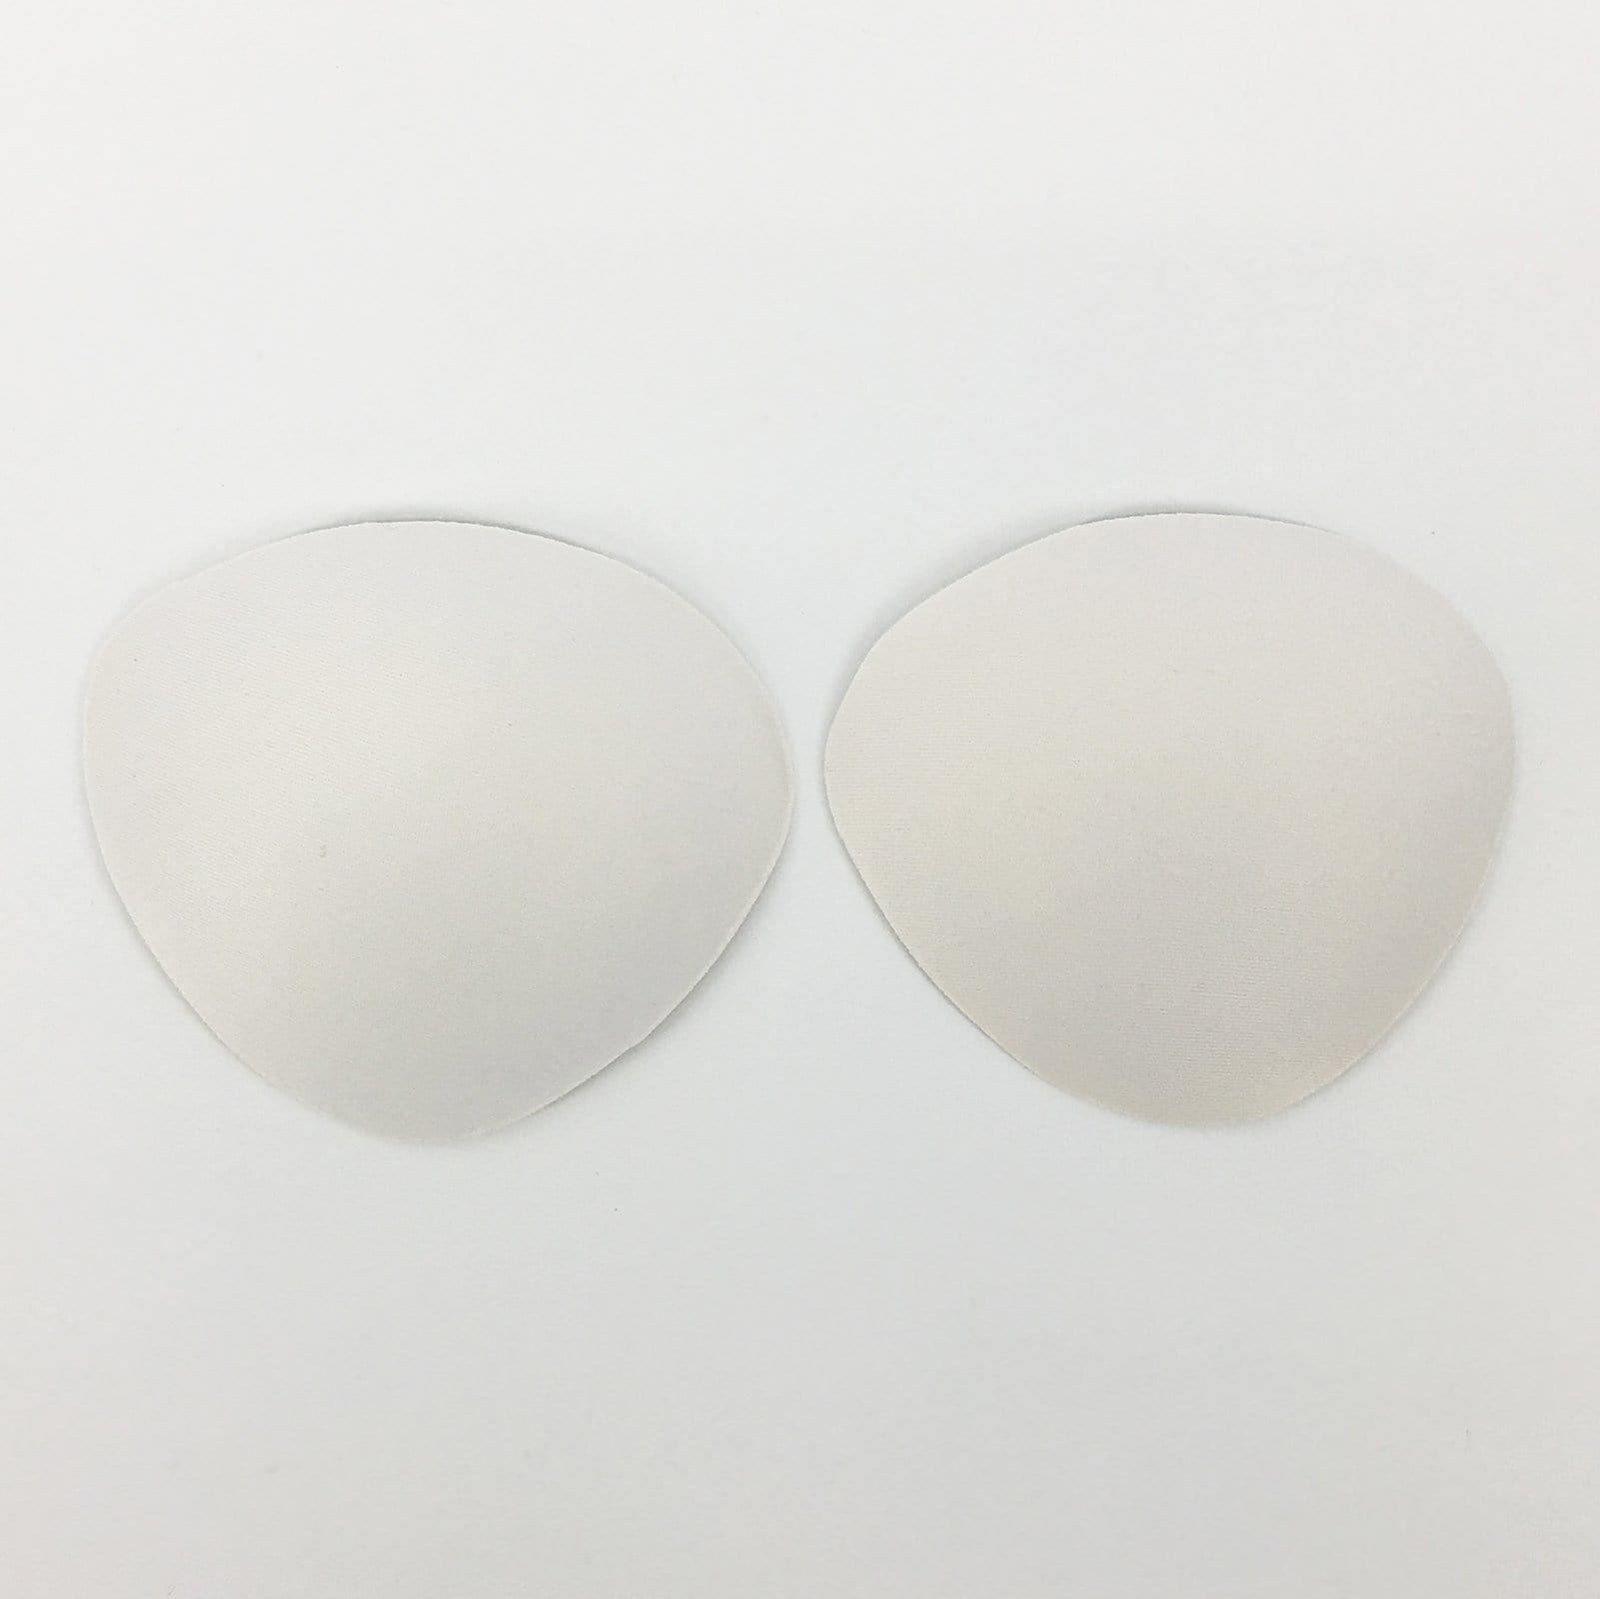 79f50934133 Small Push-Up Bra Padding Inserts In White - FUNFIT